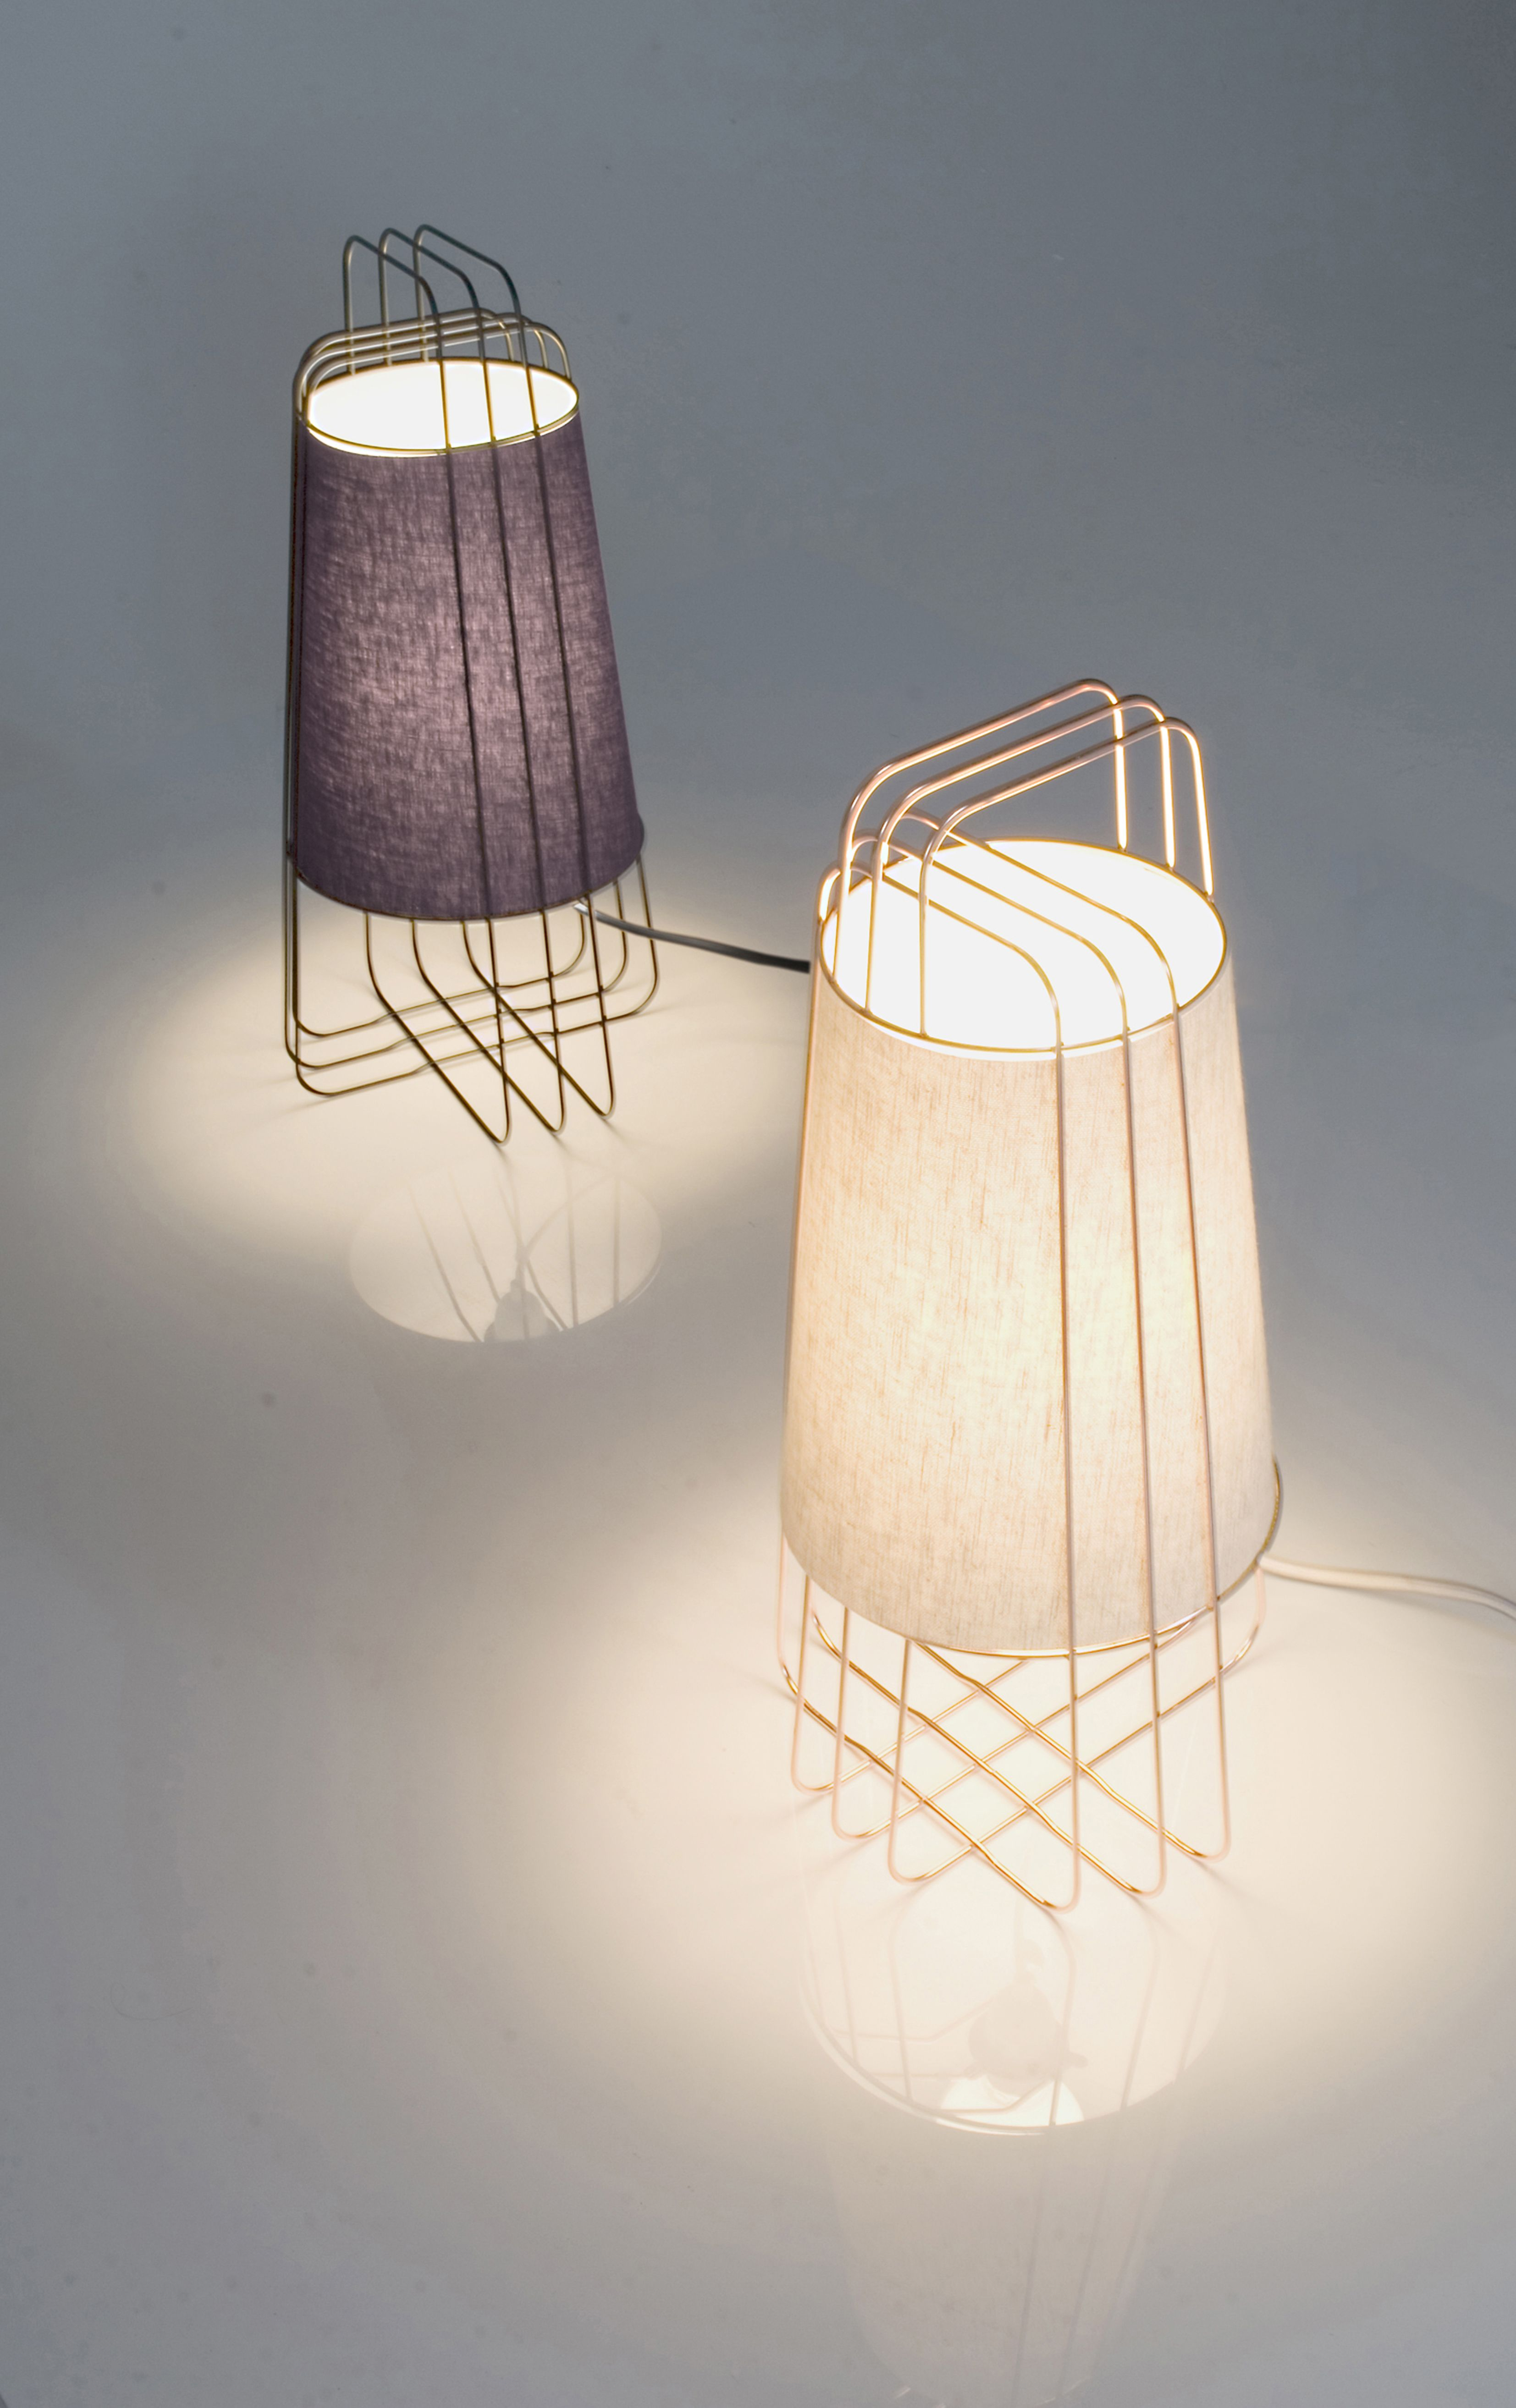 Tom Dixon Cage Table Lights Cage Table Light Table Lamp